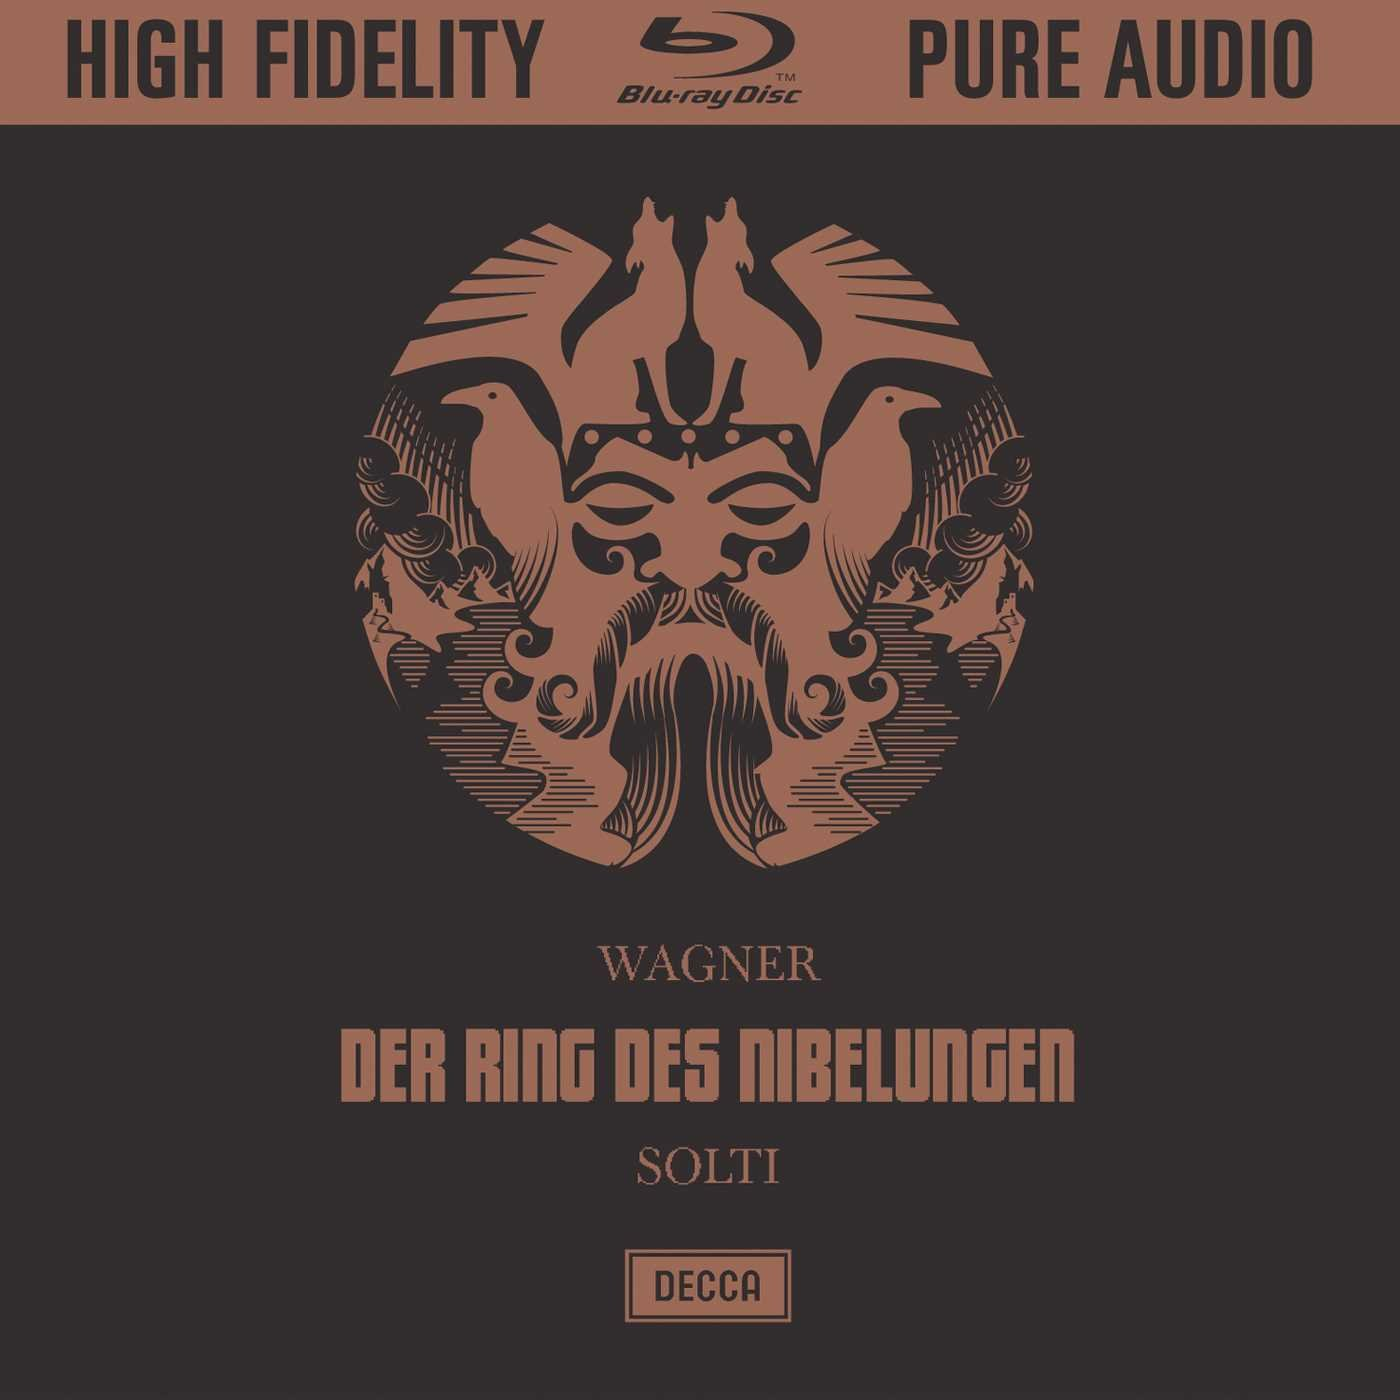 Wagner: Der Ring des Nibelungen (Ring Cycle) by Decca